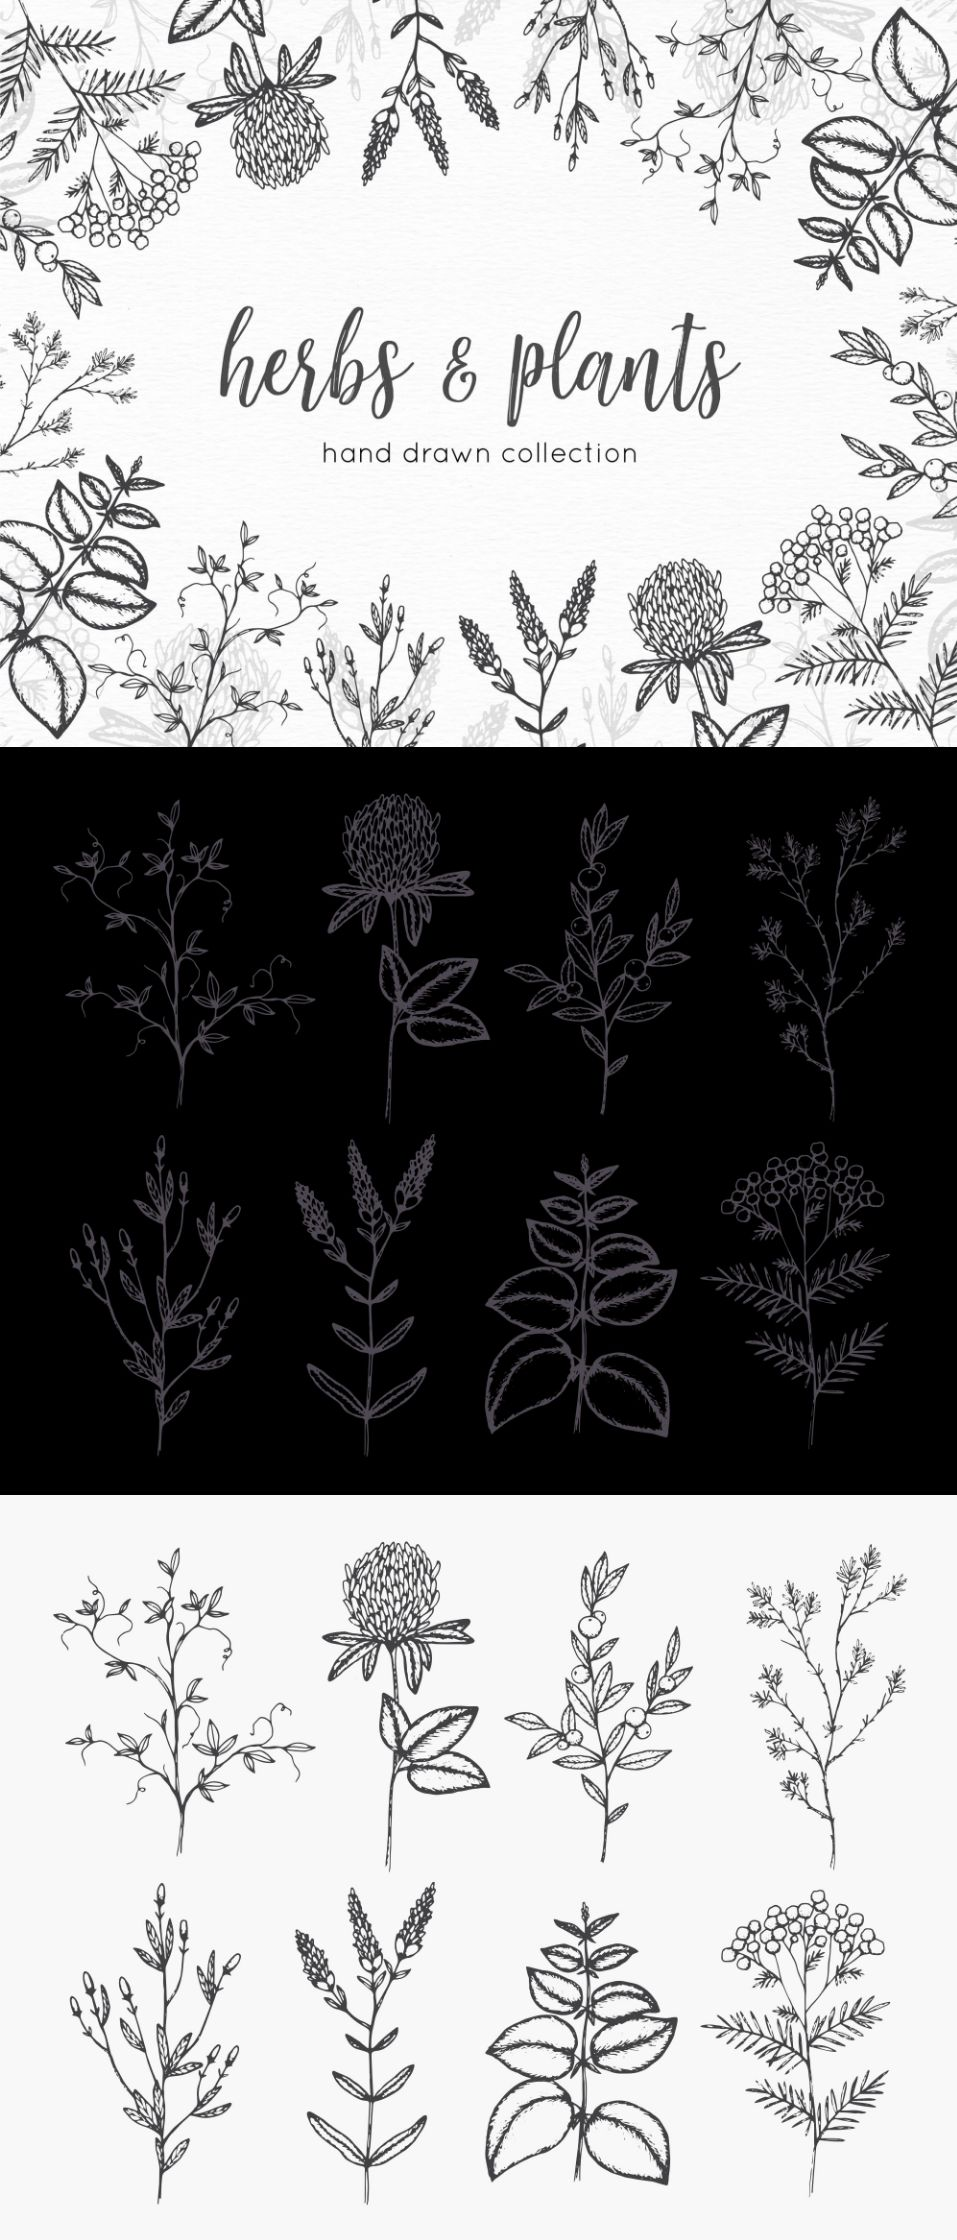 Free Hand Drawn Herbs and Plants Vector Graphics